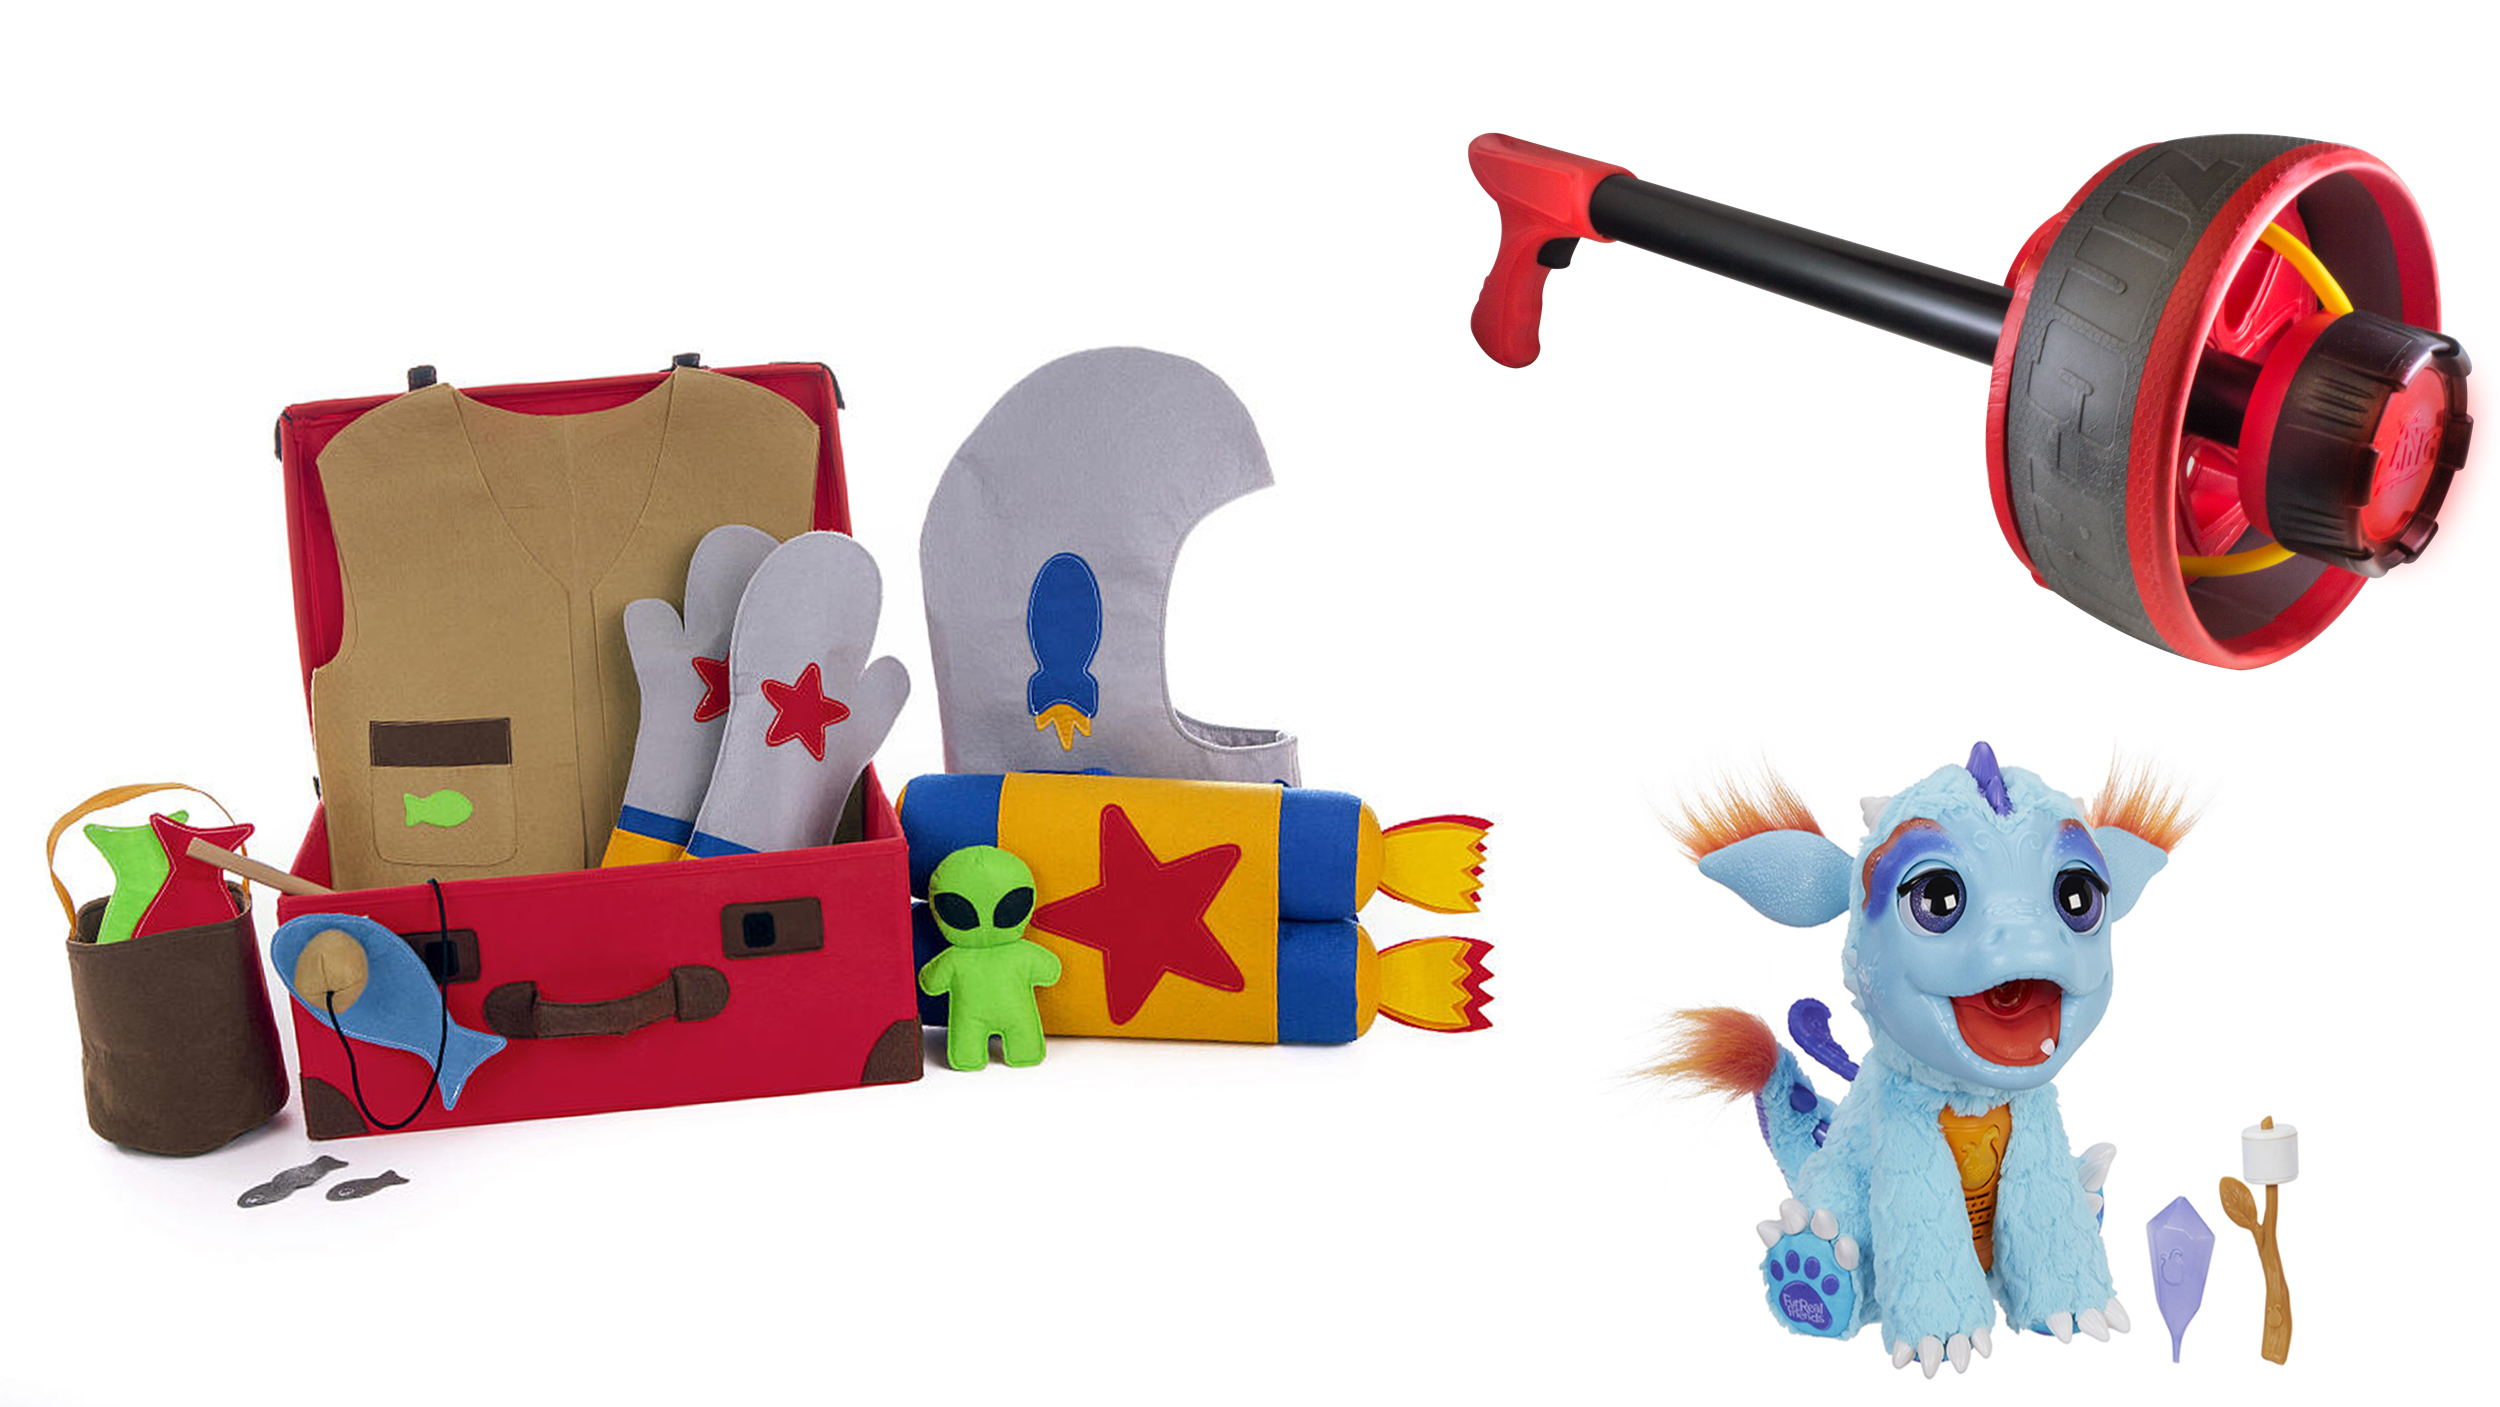 Toys For Awards : Good housekeeping toy awards today